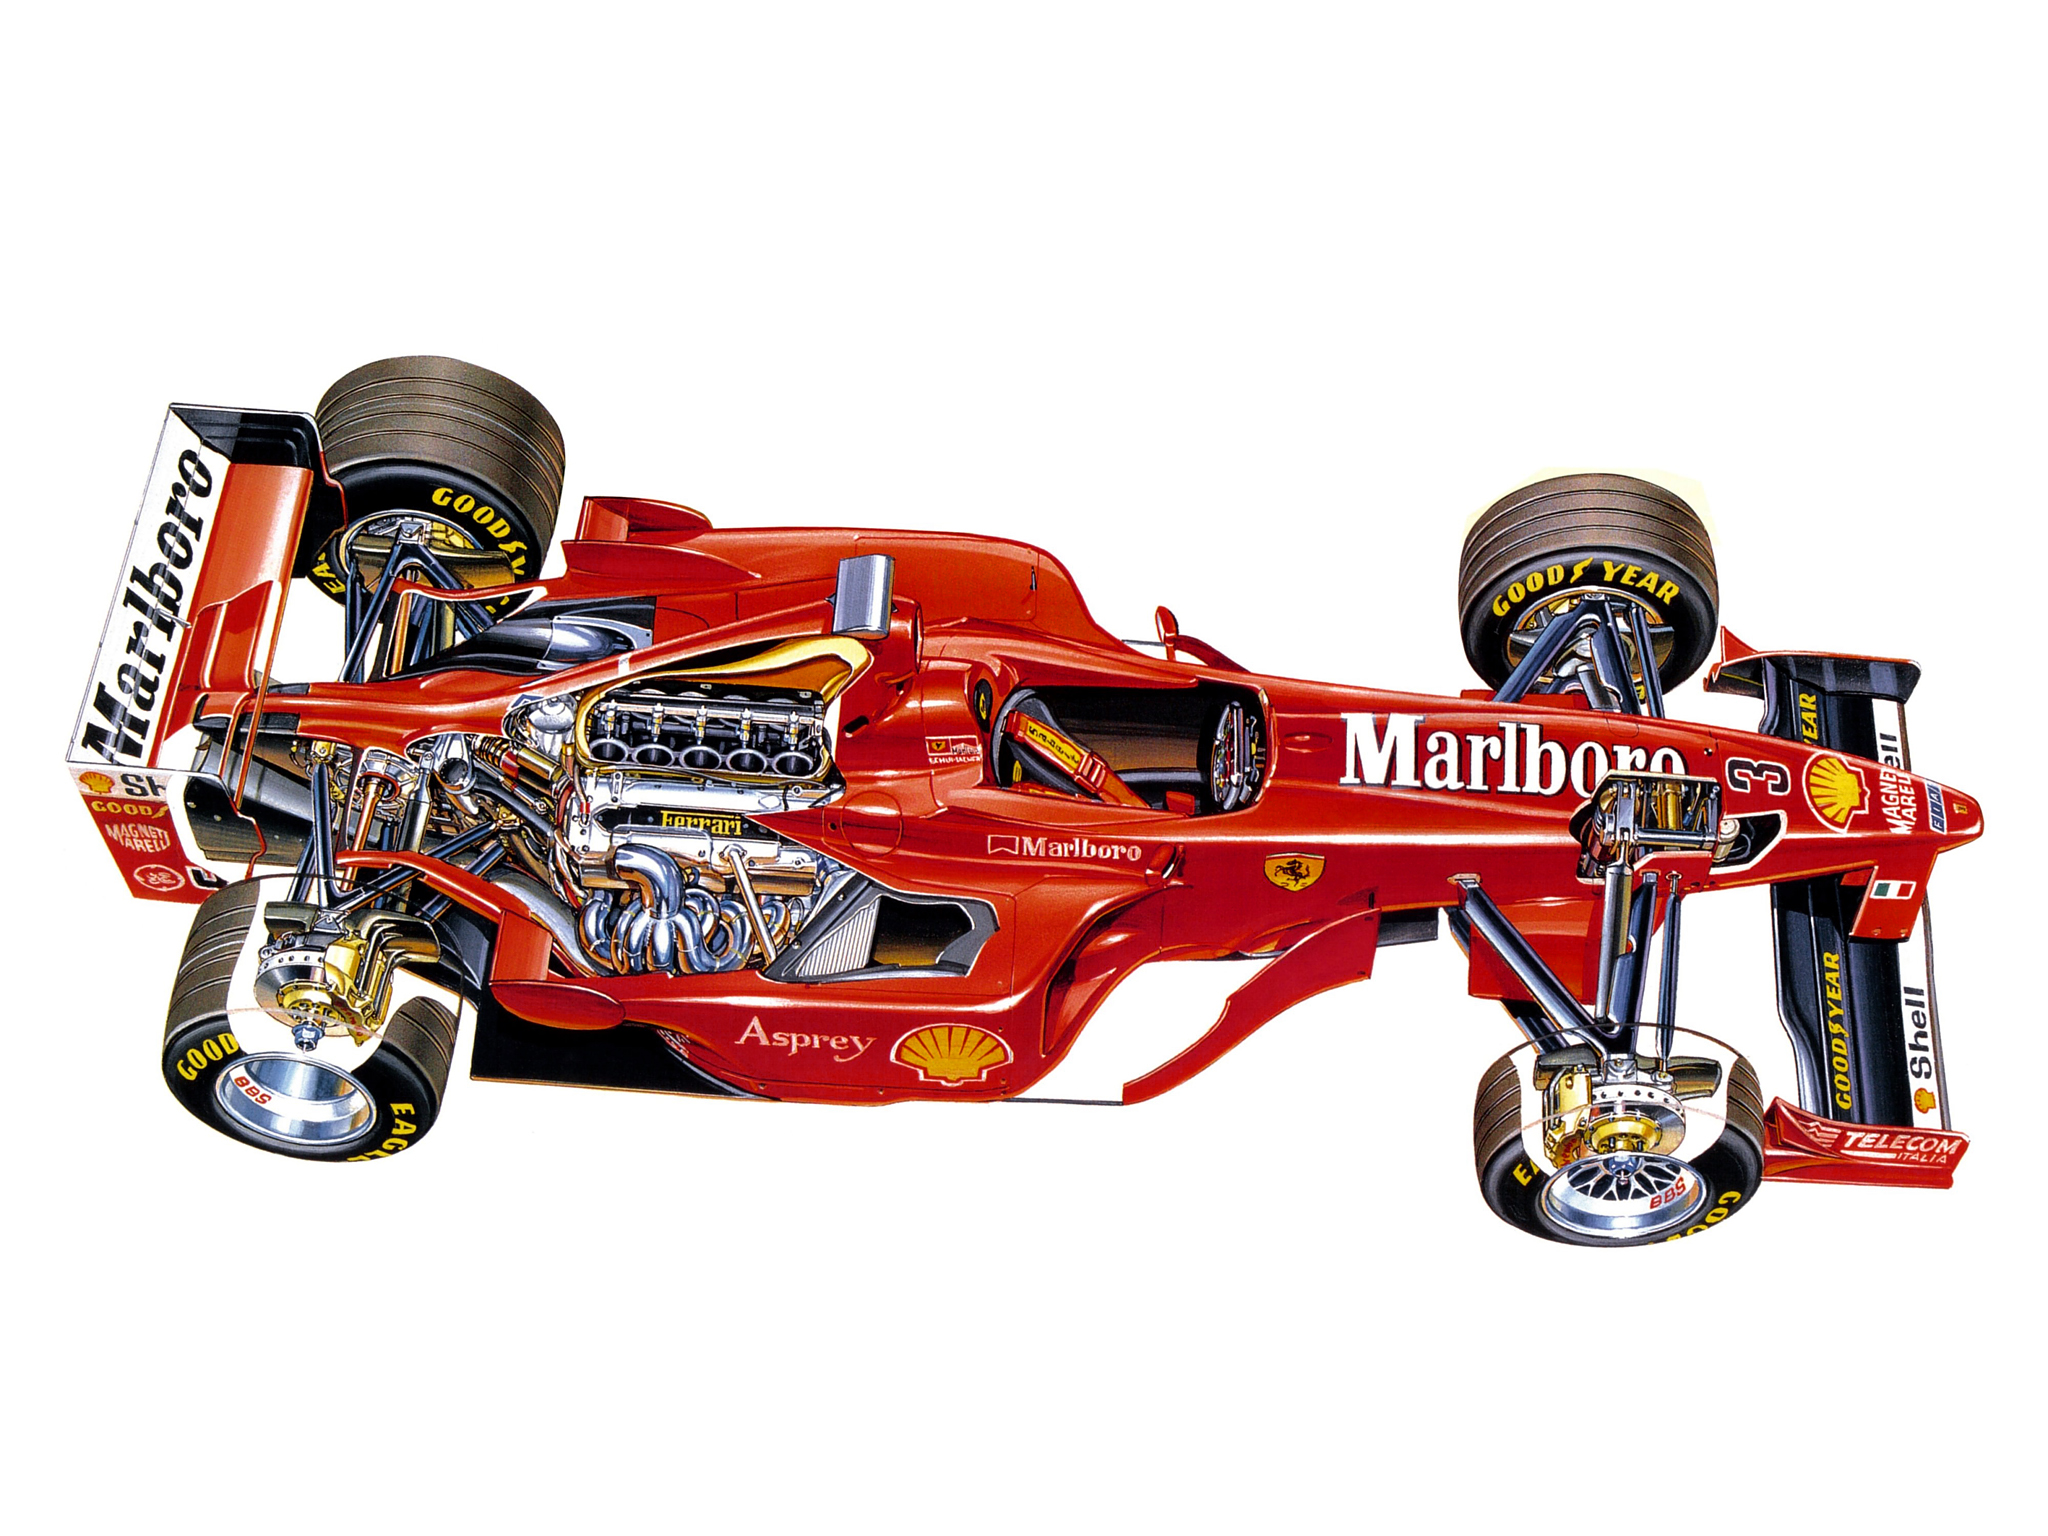 1998 ferrari f300 formula one f 1 race racing interior engine wallpaper 2048x1536 133259. Black Bedroom Furniture Sets. Home Design Ideas